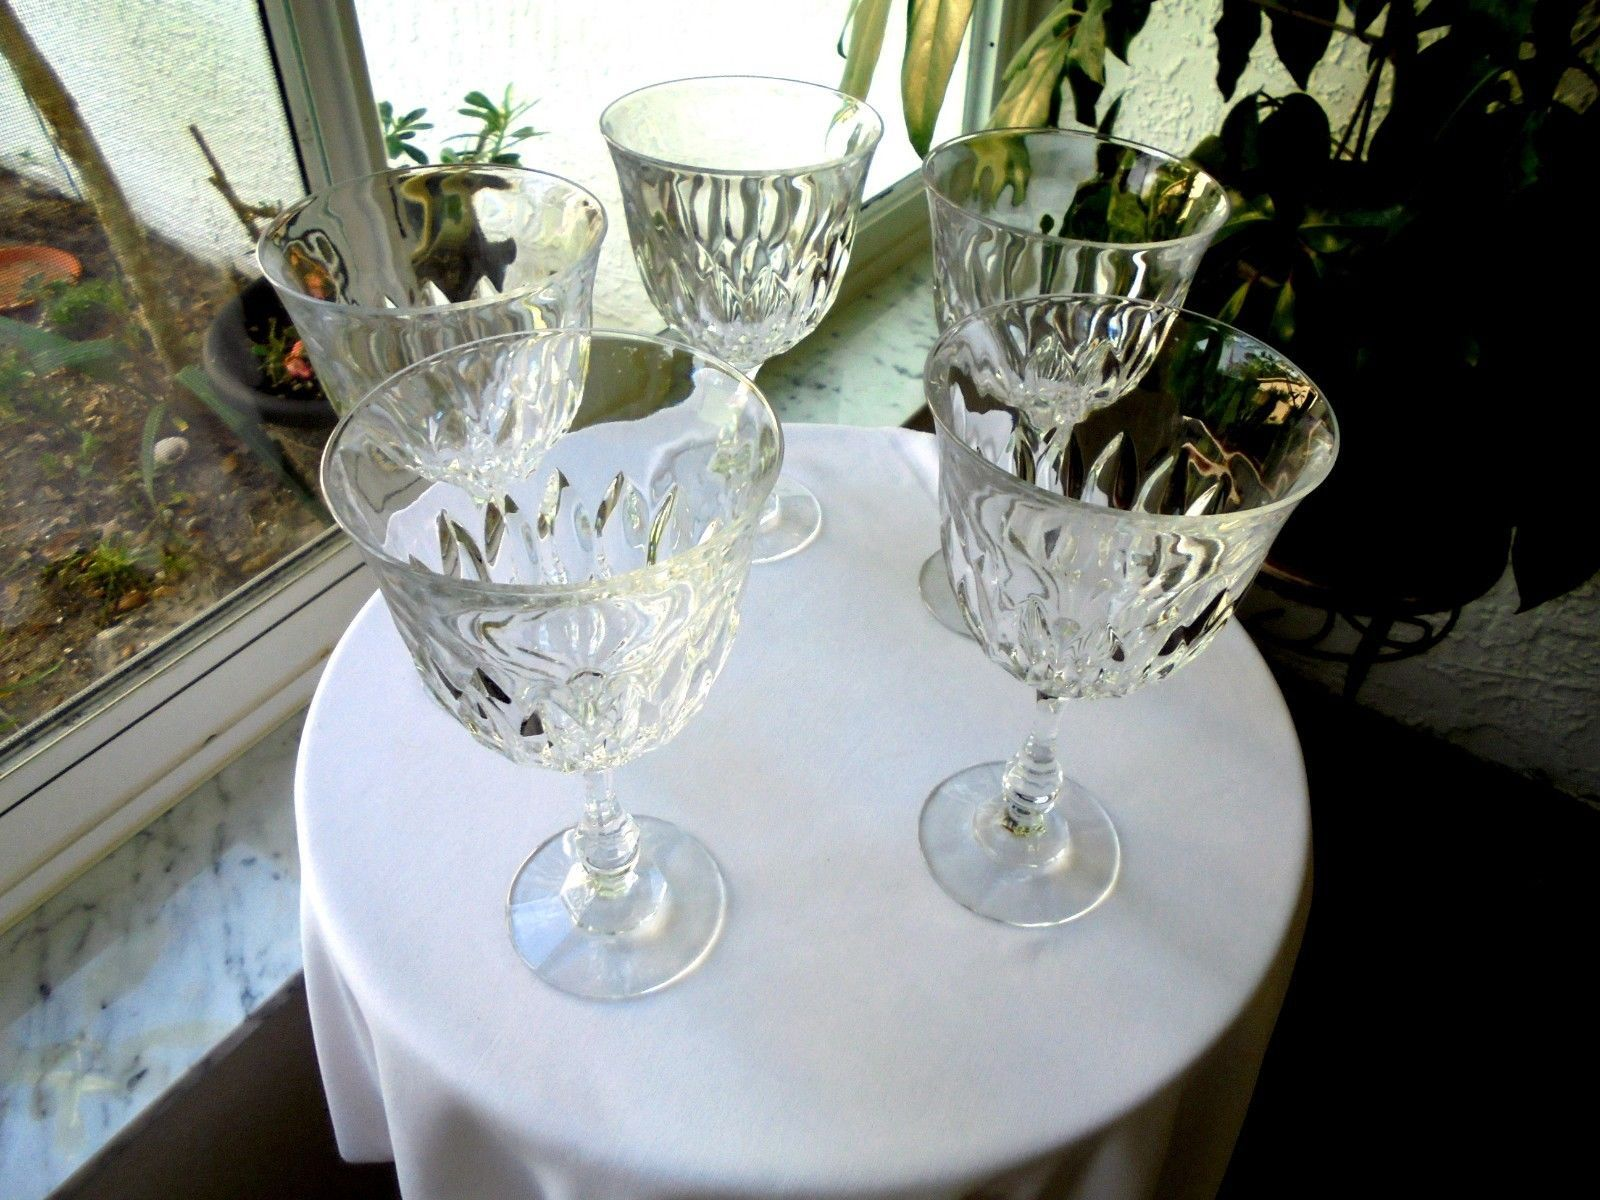 """Set of 5 High Quality Large Crystal Water Glasses 7 1/2"""" Tall - $59.40"""